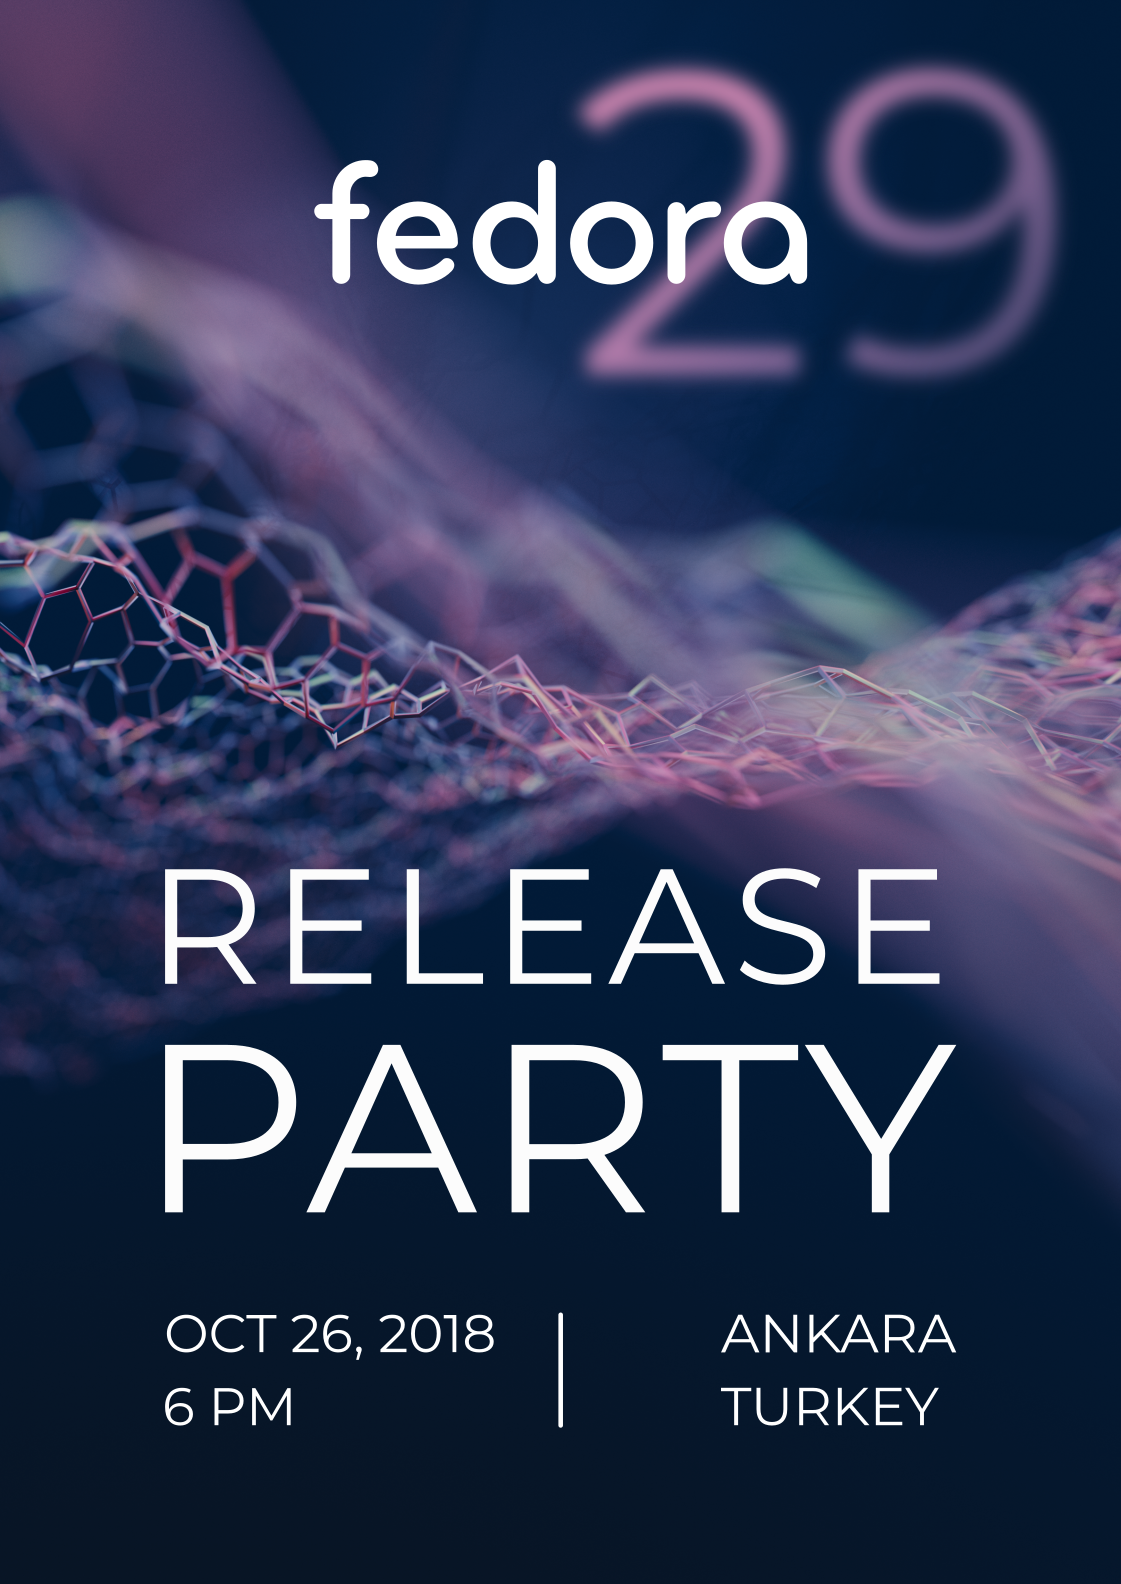 fedora29-release-party-02.png